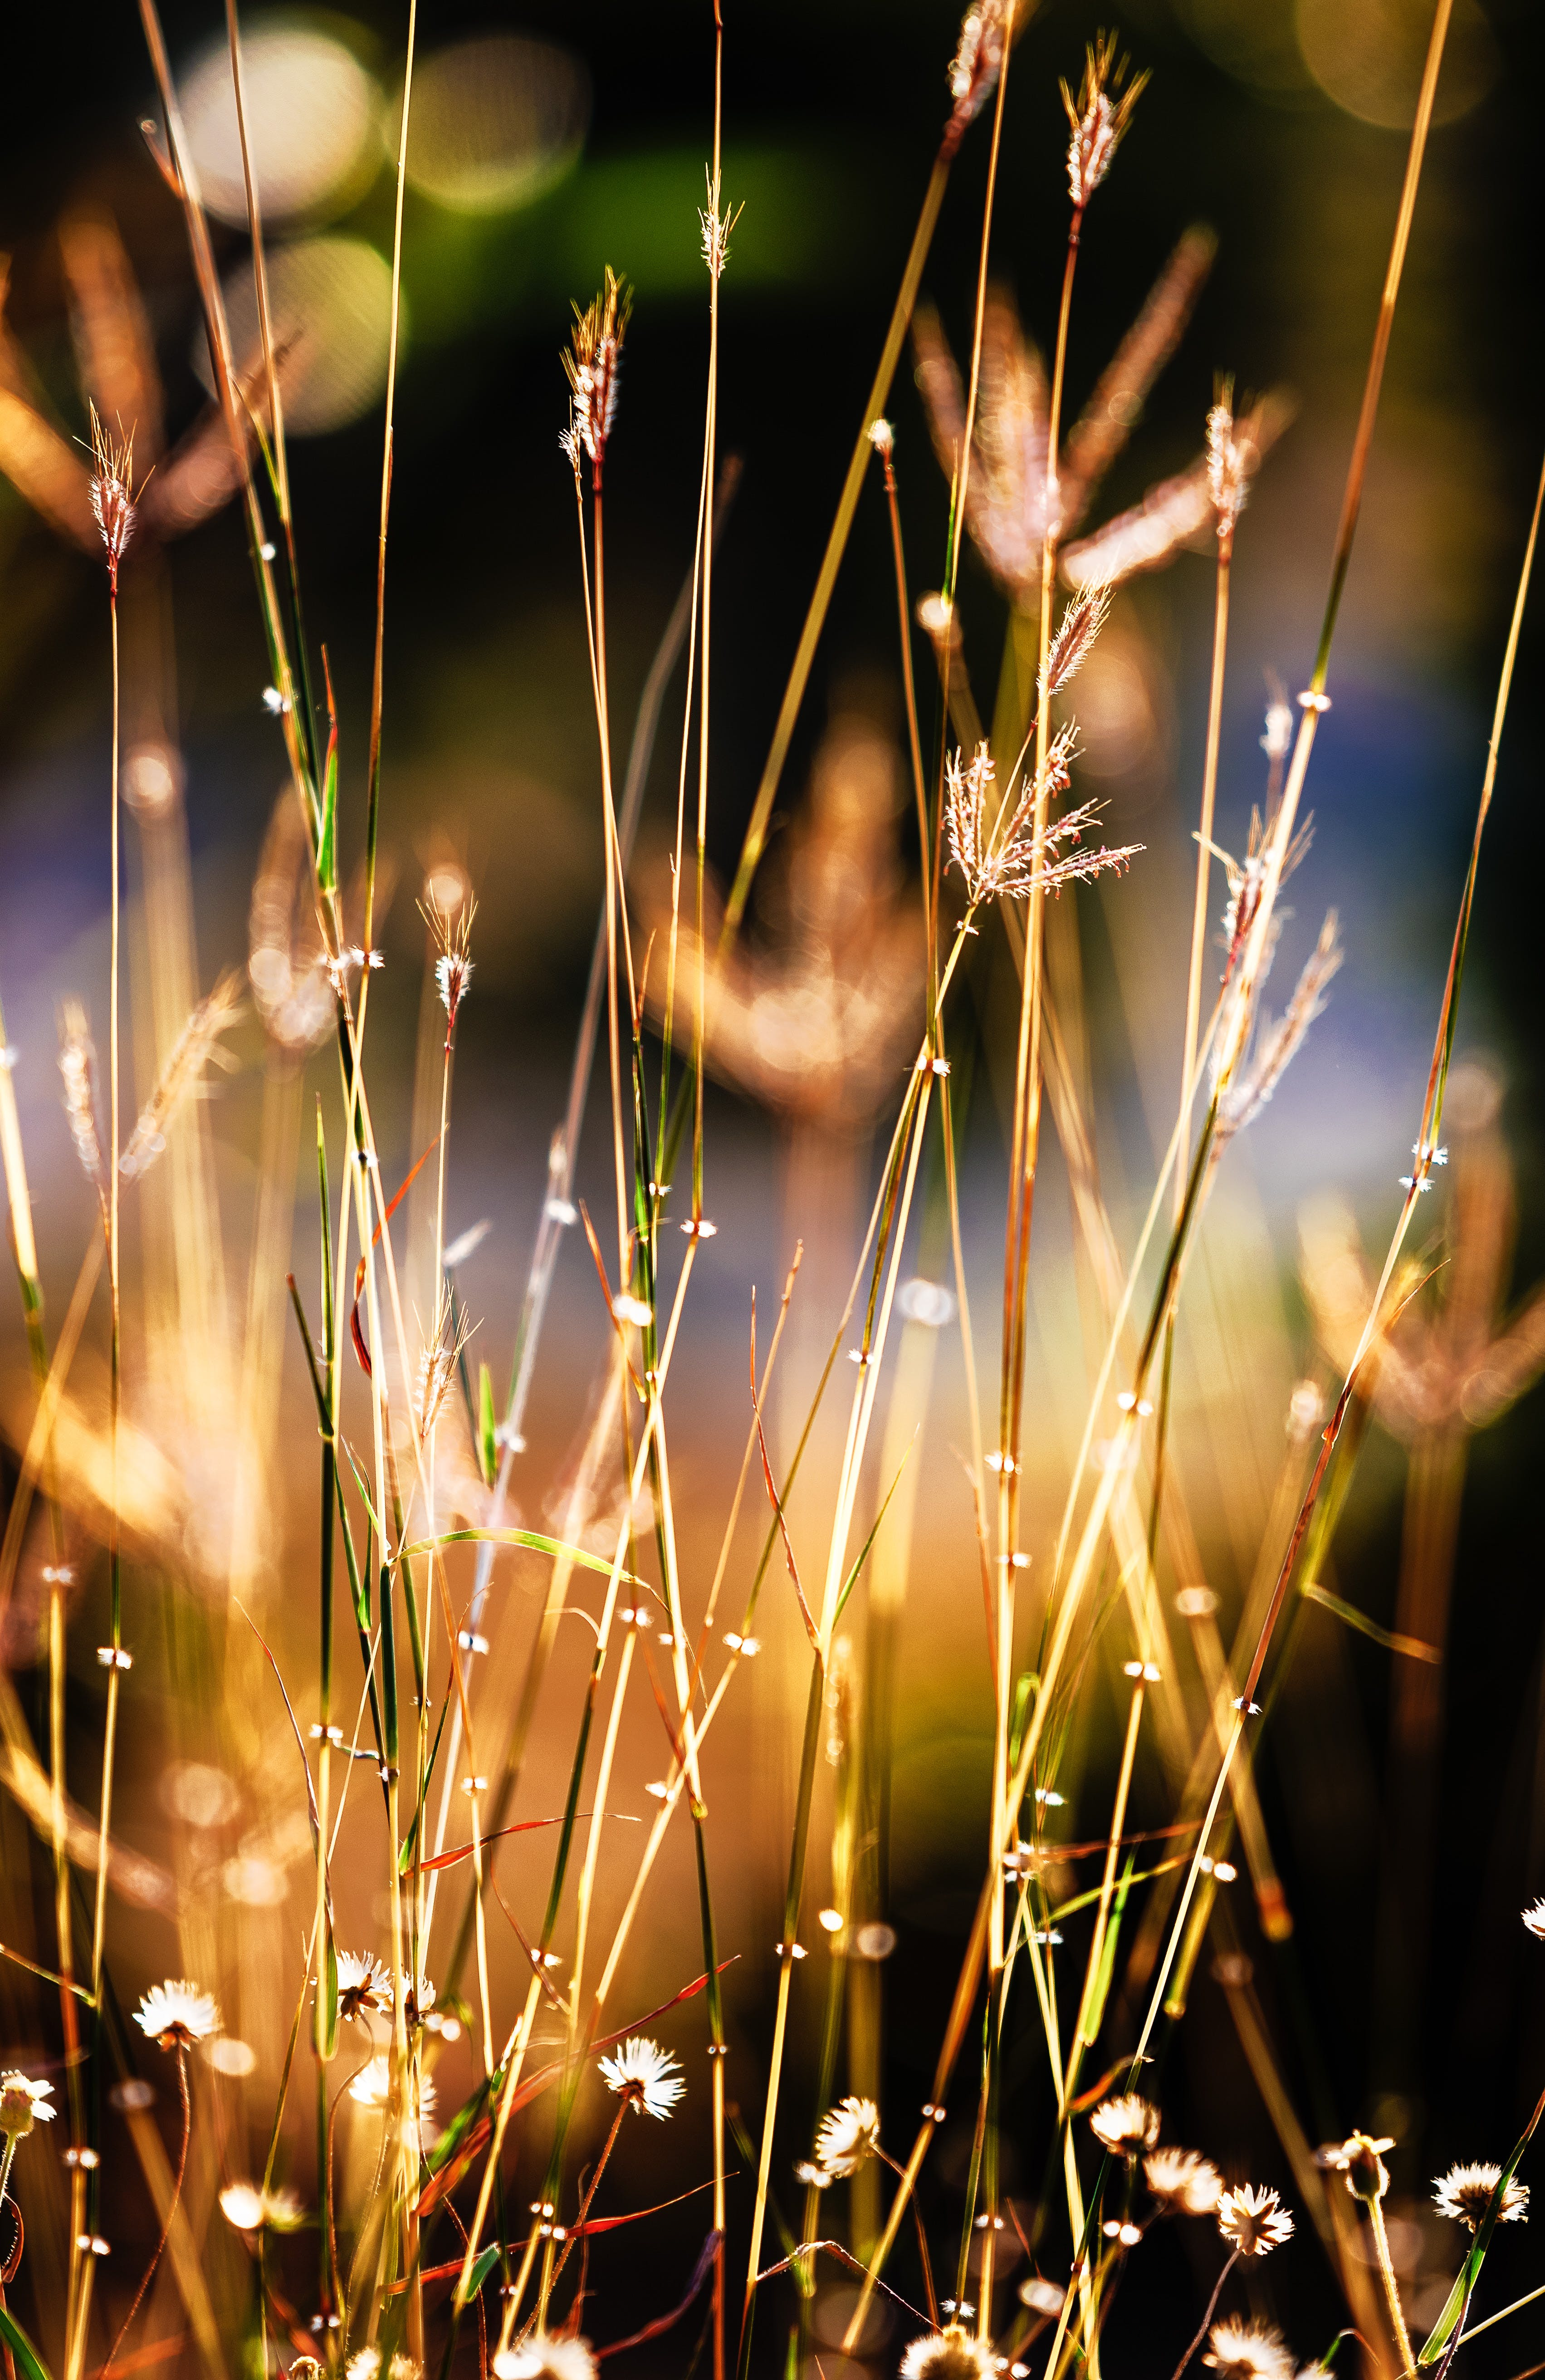 Closeup Photography of Grass